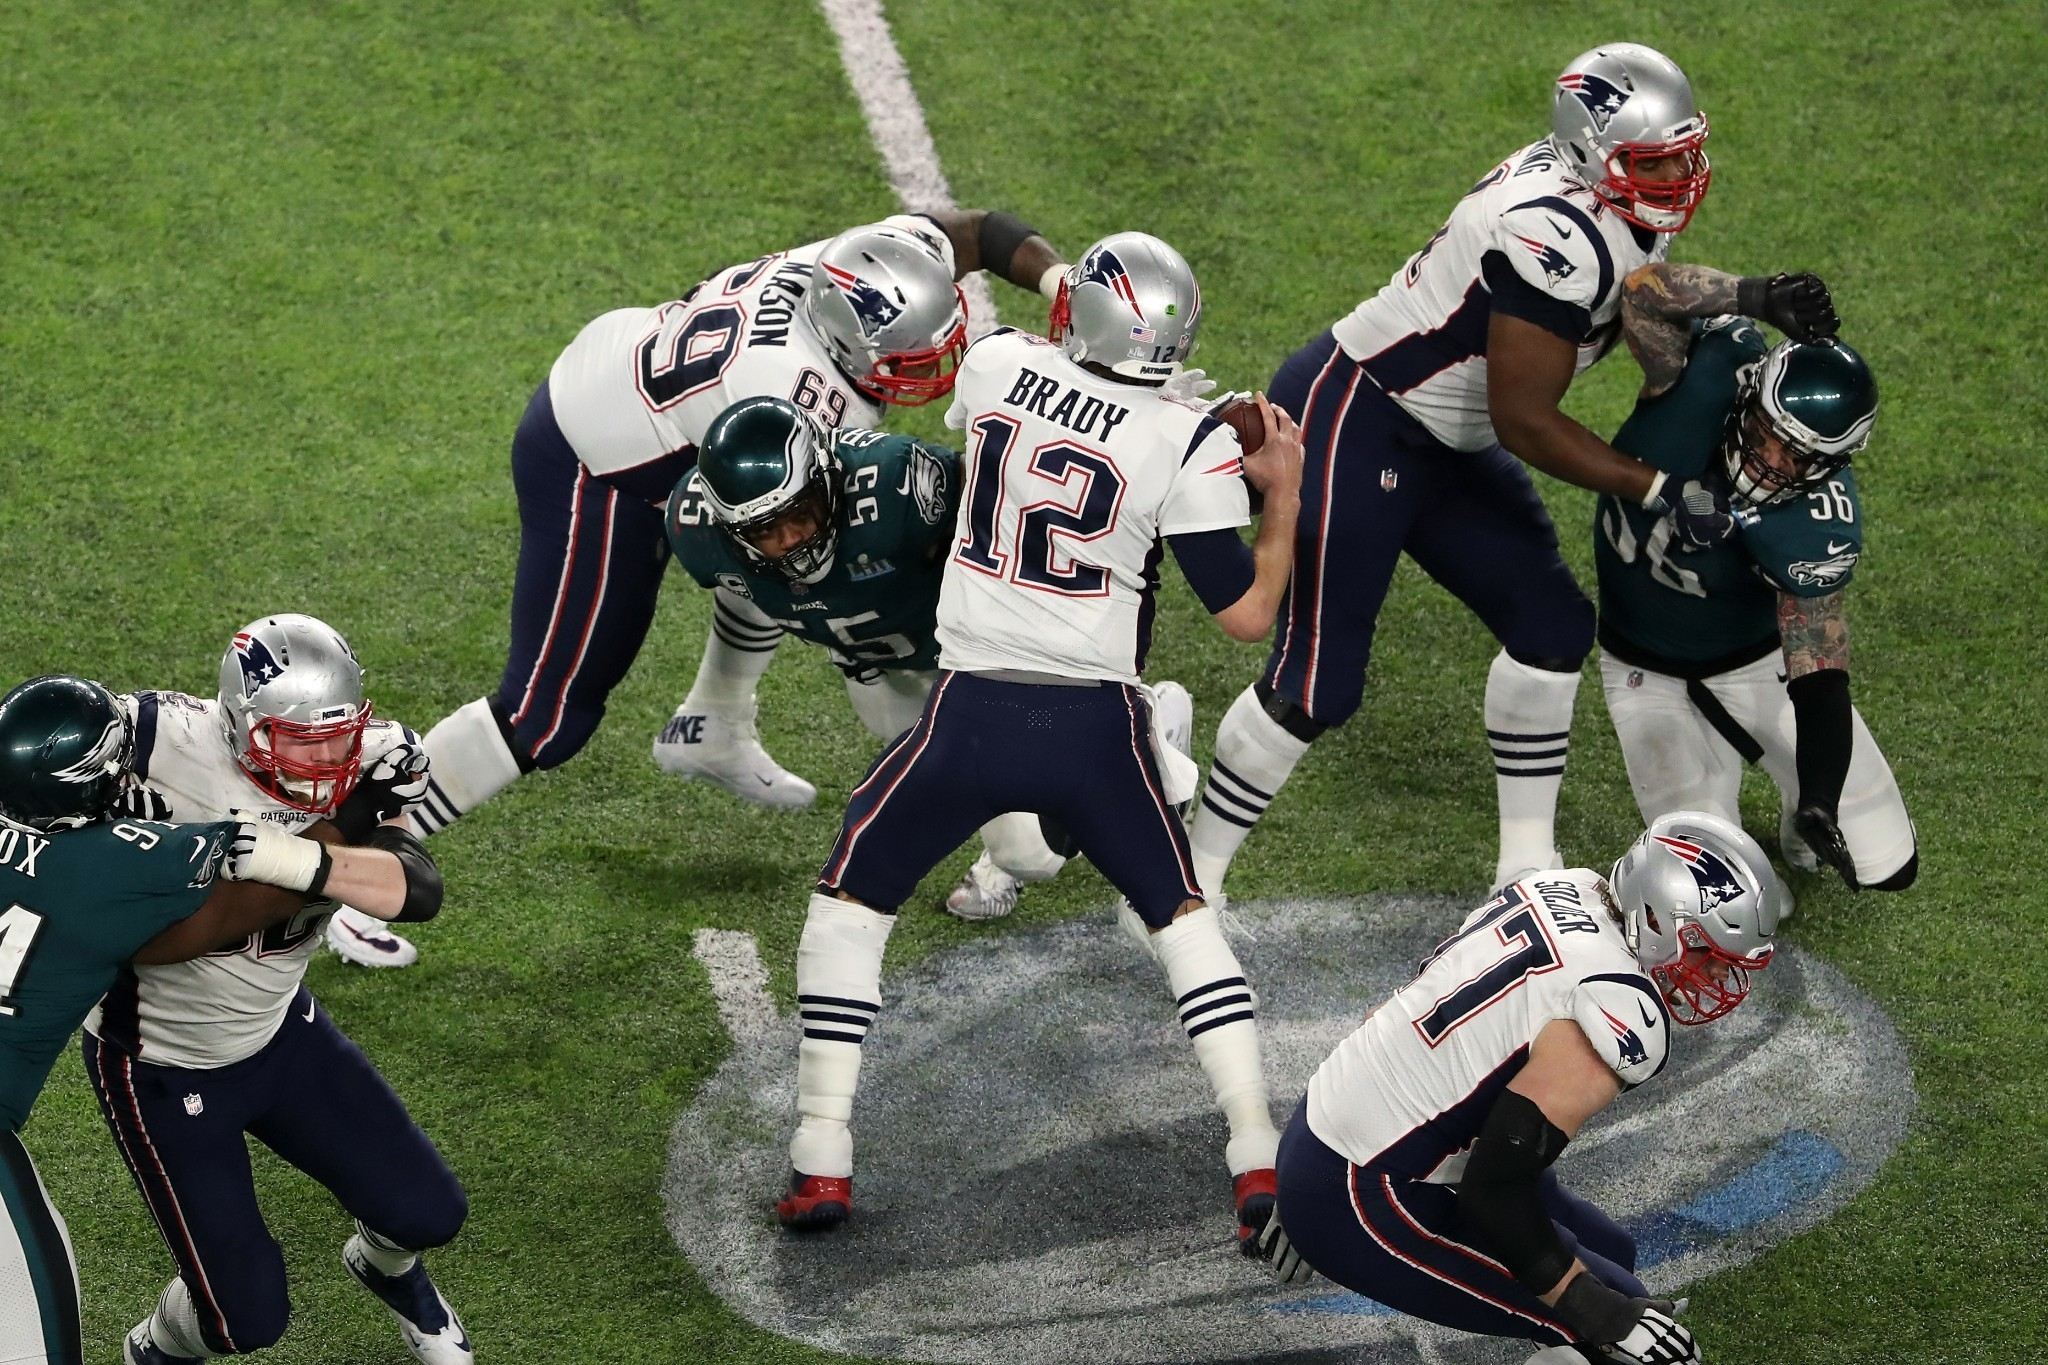 Tom Brady was still great in Super Bowl 52. He just wasn't heroic this time.